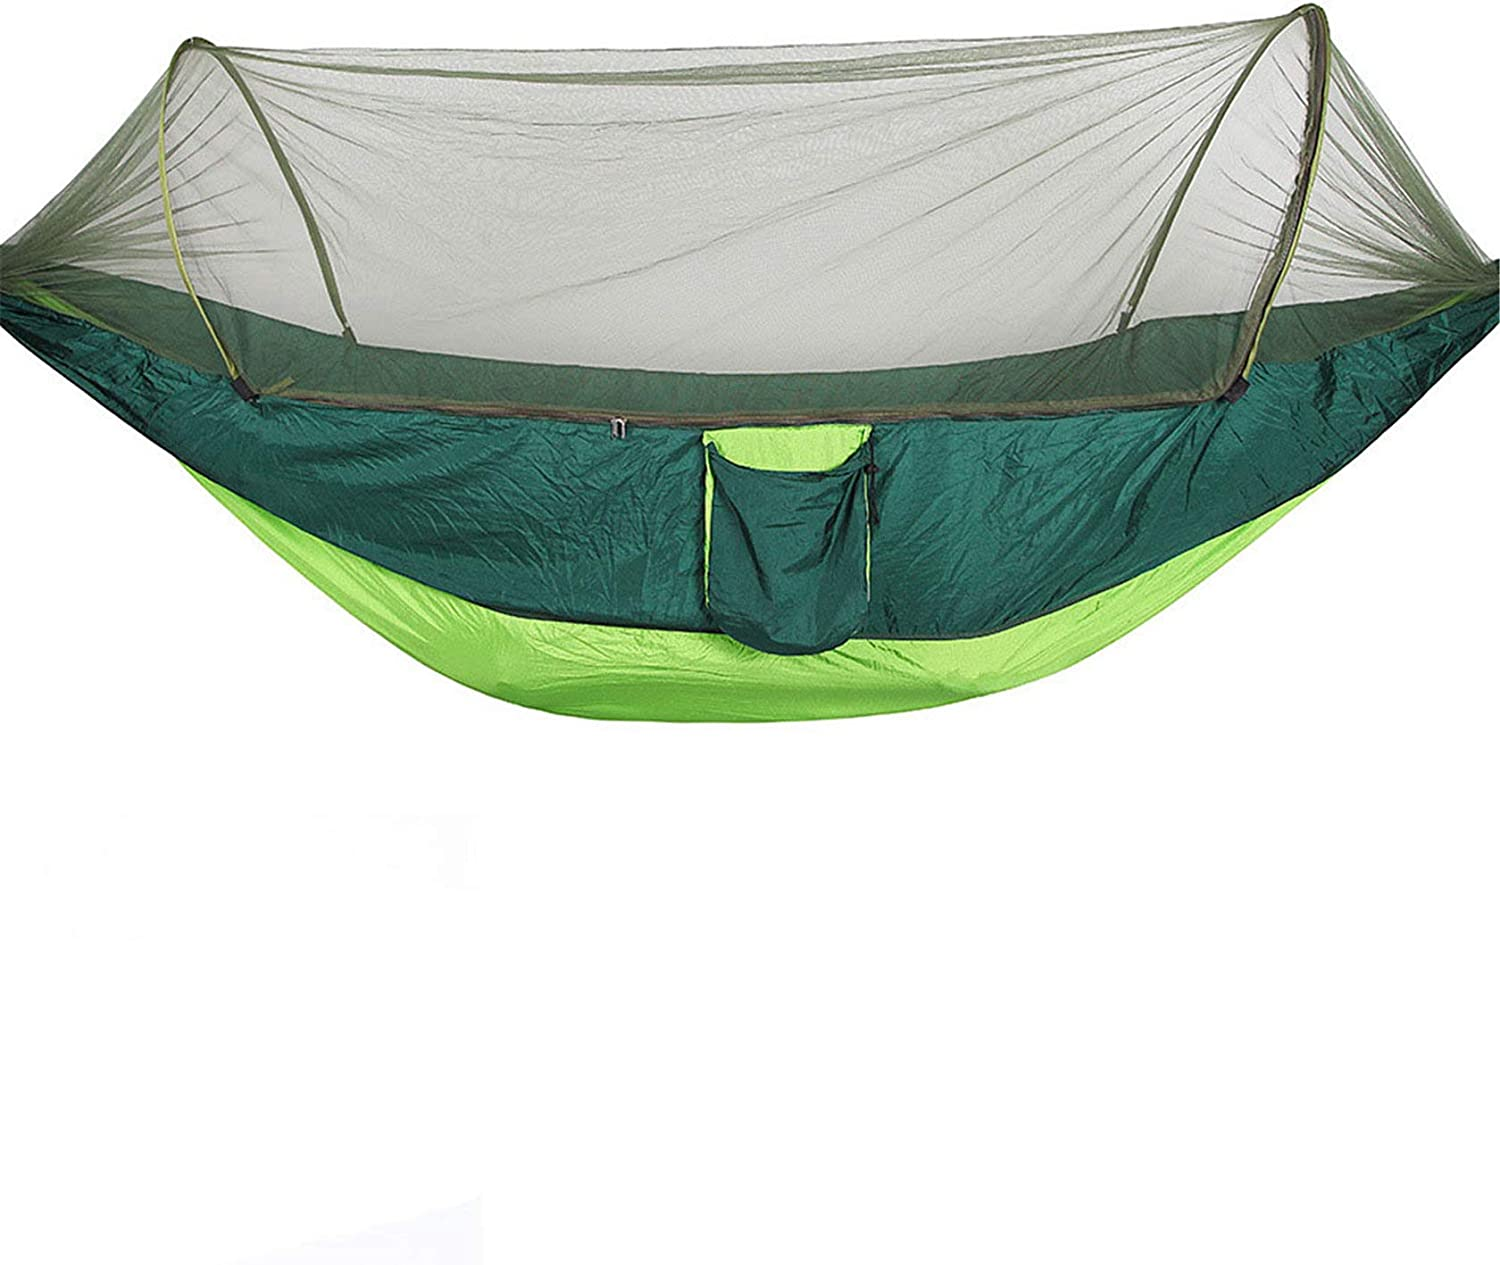 Camping Hammock Double Nylon Portable Parachute Hammock Automatic with Net Outfitters for Indoor,Outdoor,Hiking,Beach (Green,290x140cm)